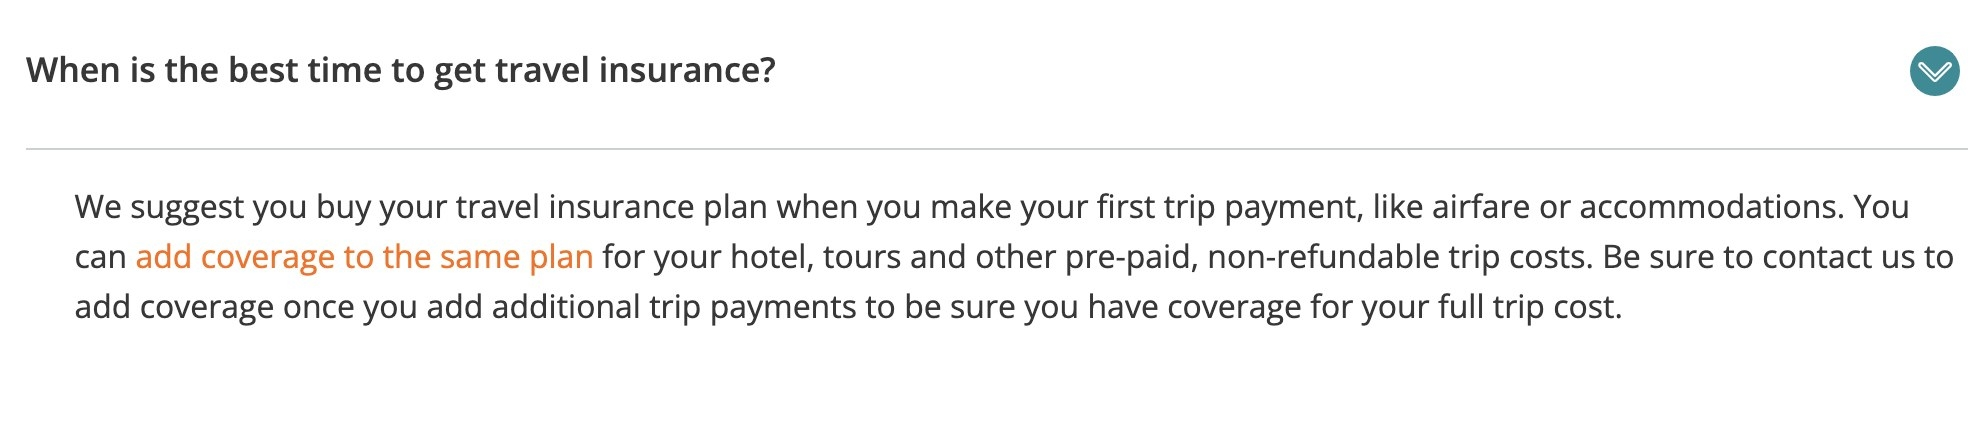 Screenshot of when the best time to buy travel insurance is